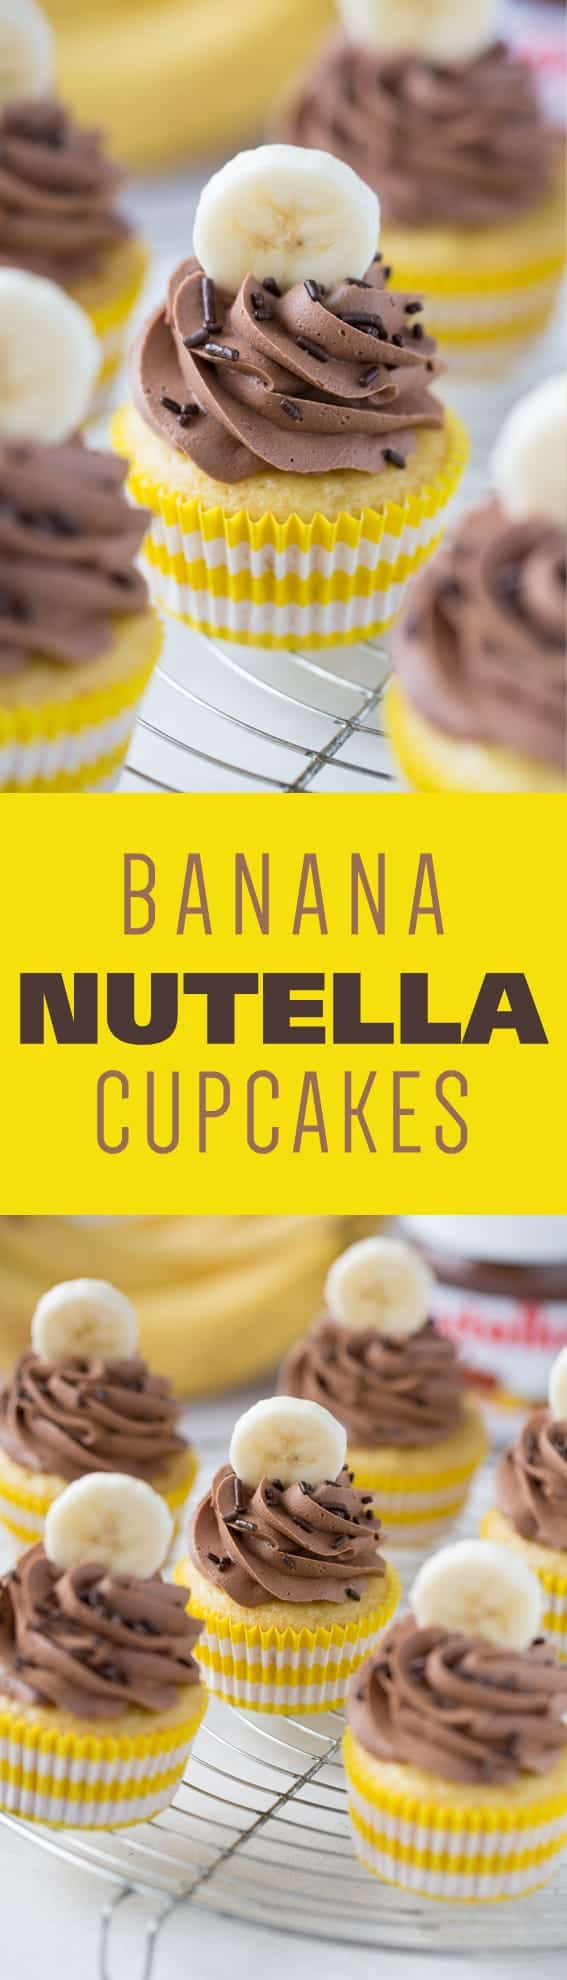 Banana Nutella Cupcakes start with a light and airy banana cake. Topped with Nutella frosting, these cupcakes will become your favorite!